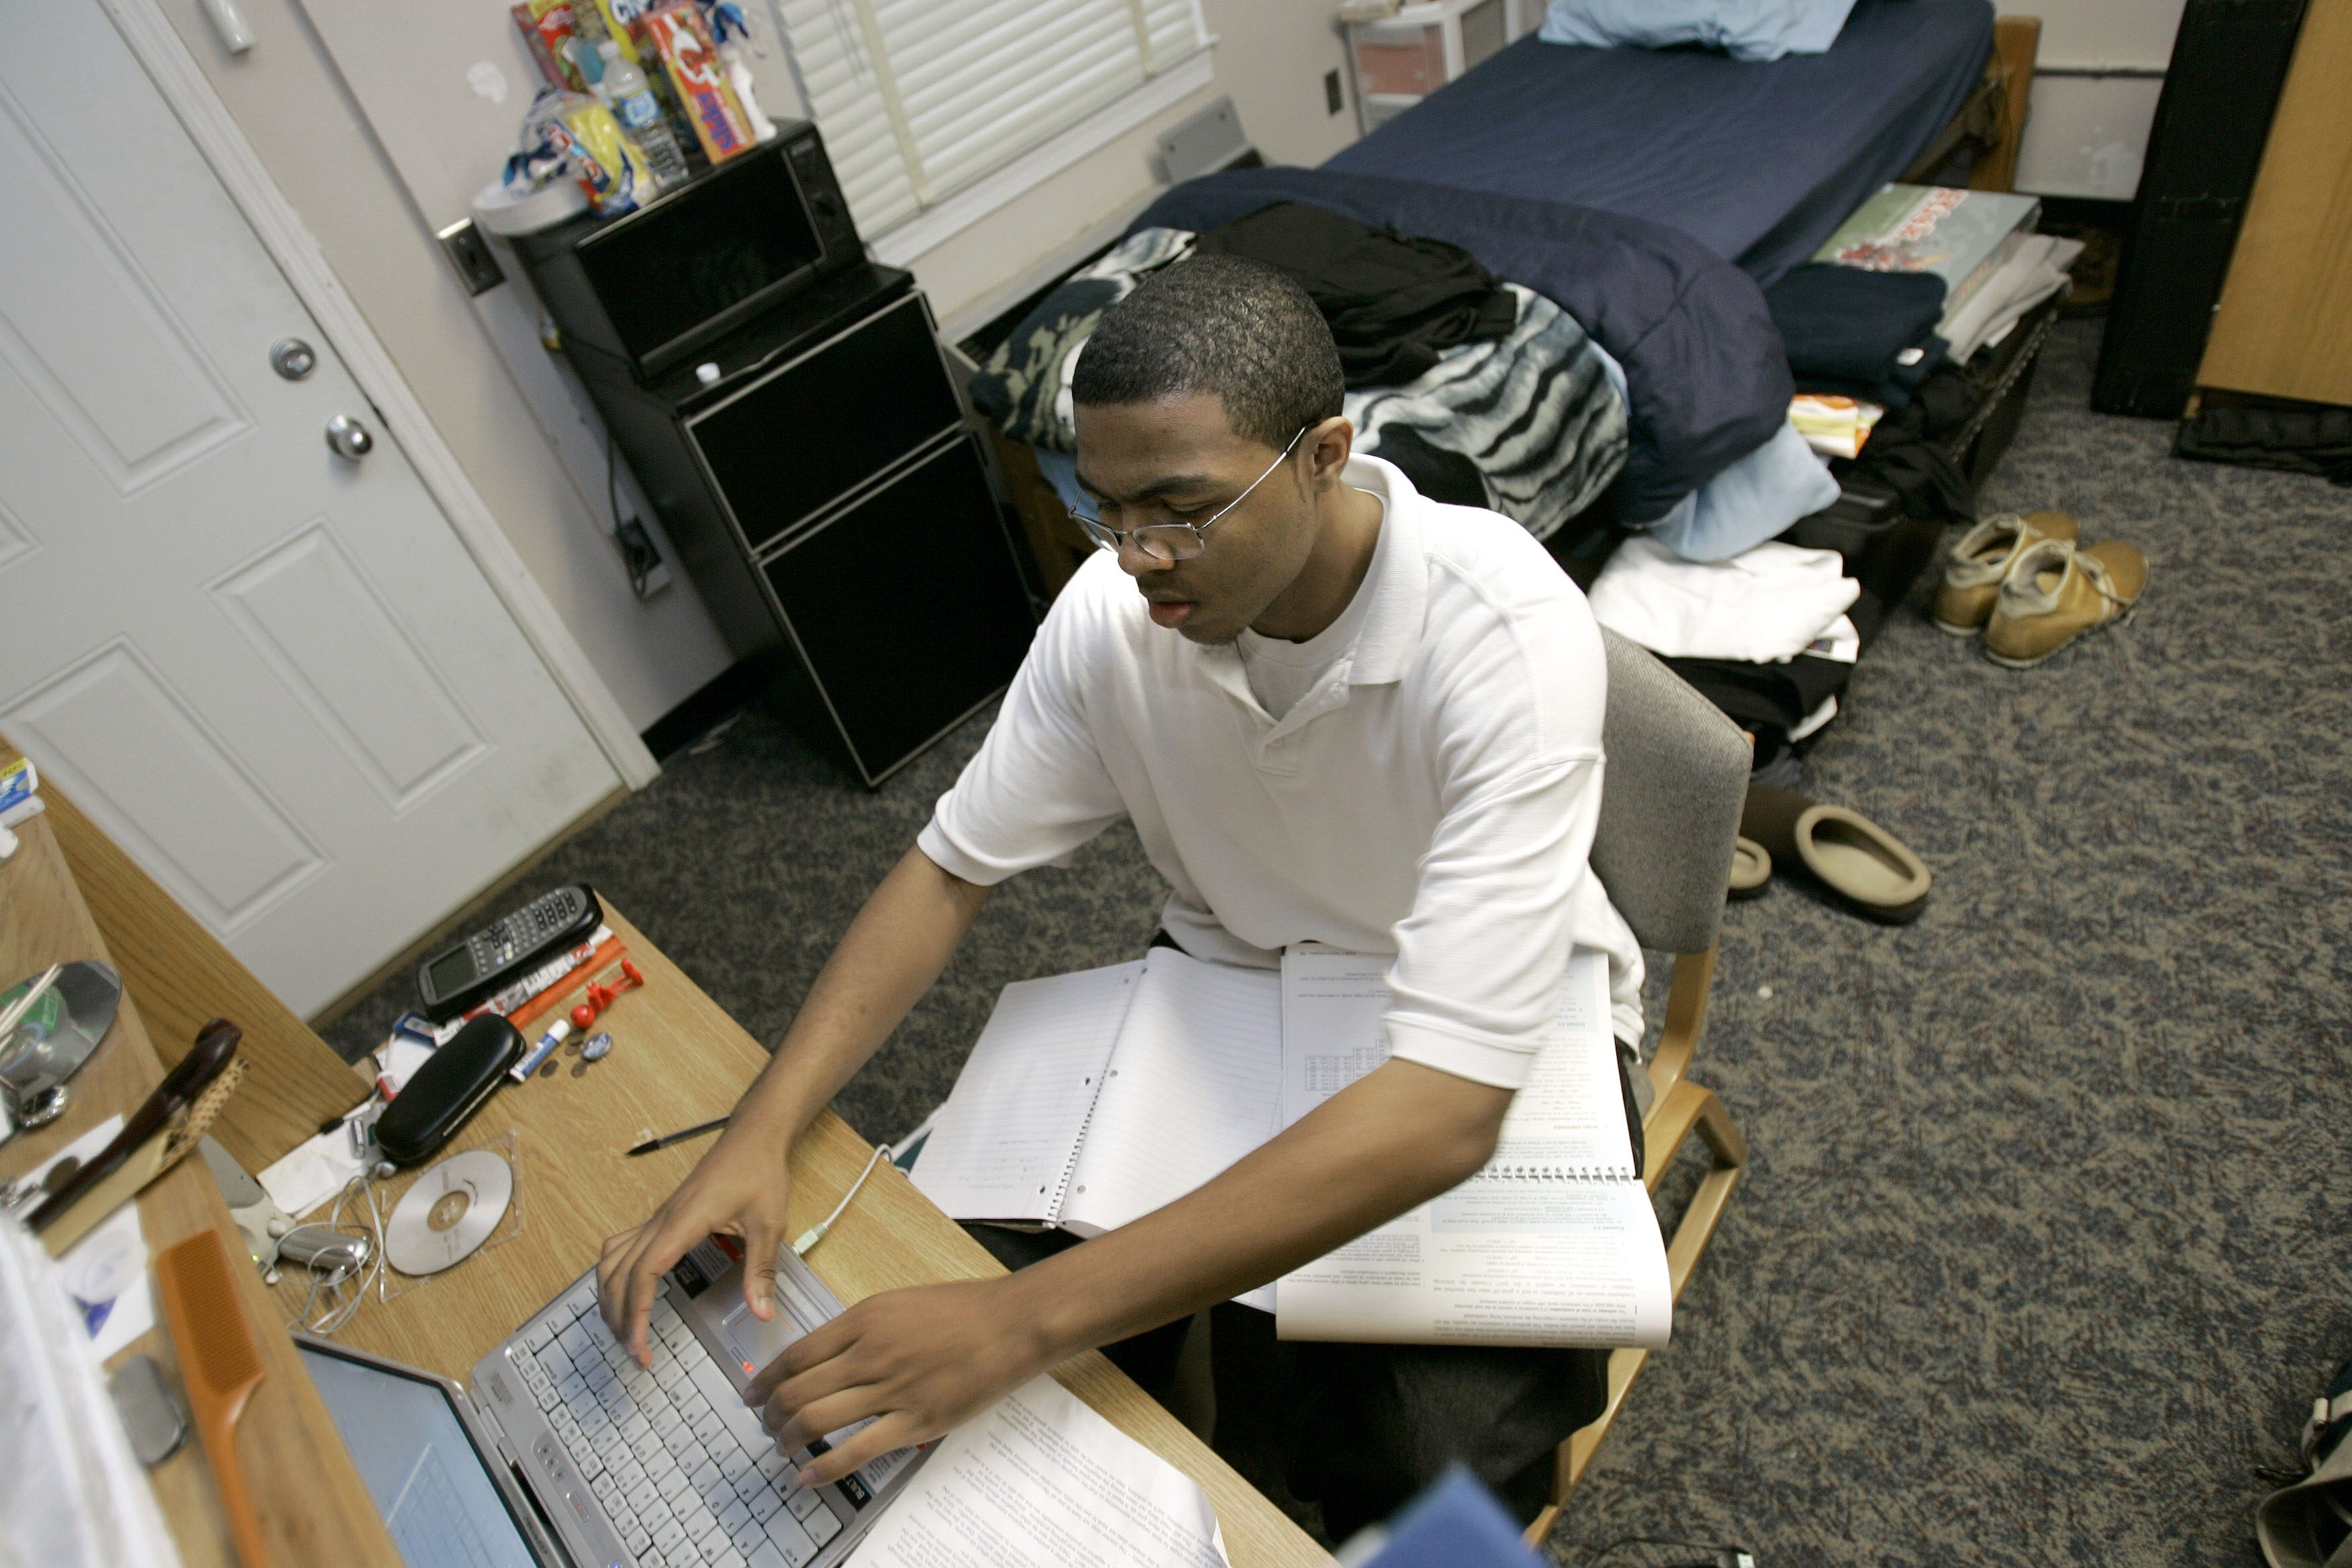 student working on laptop in college dorm room